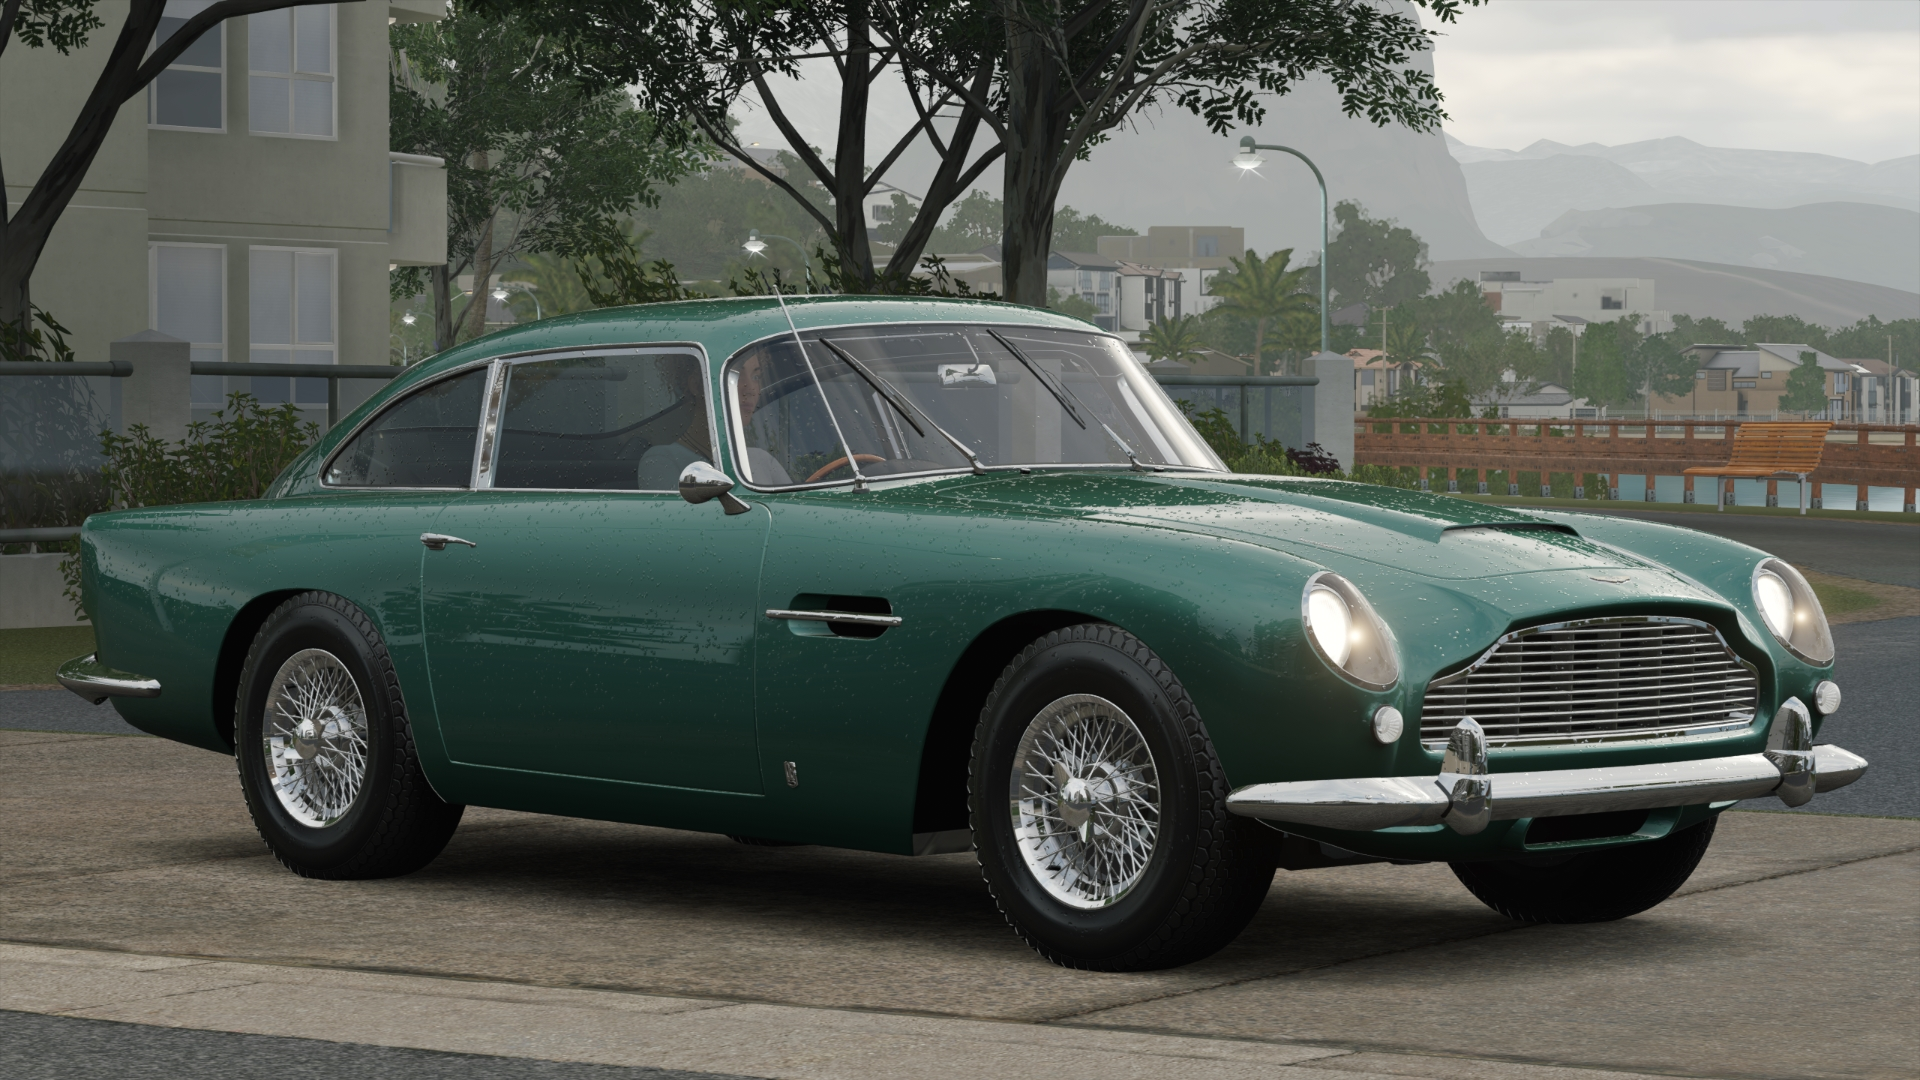 Aston Martin DB5 In Forza Horizon 3